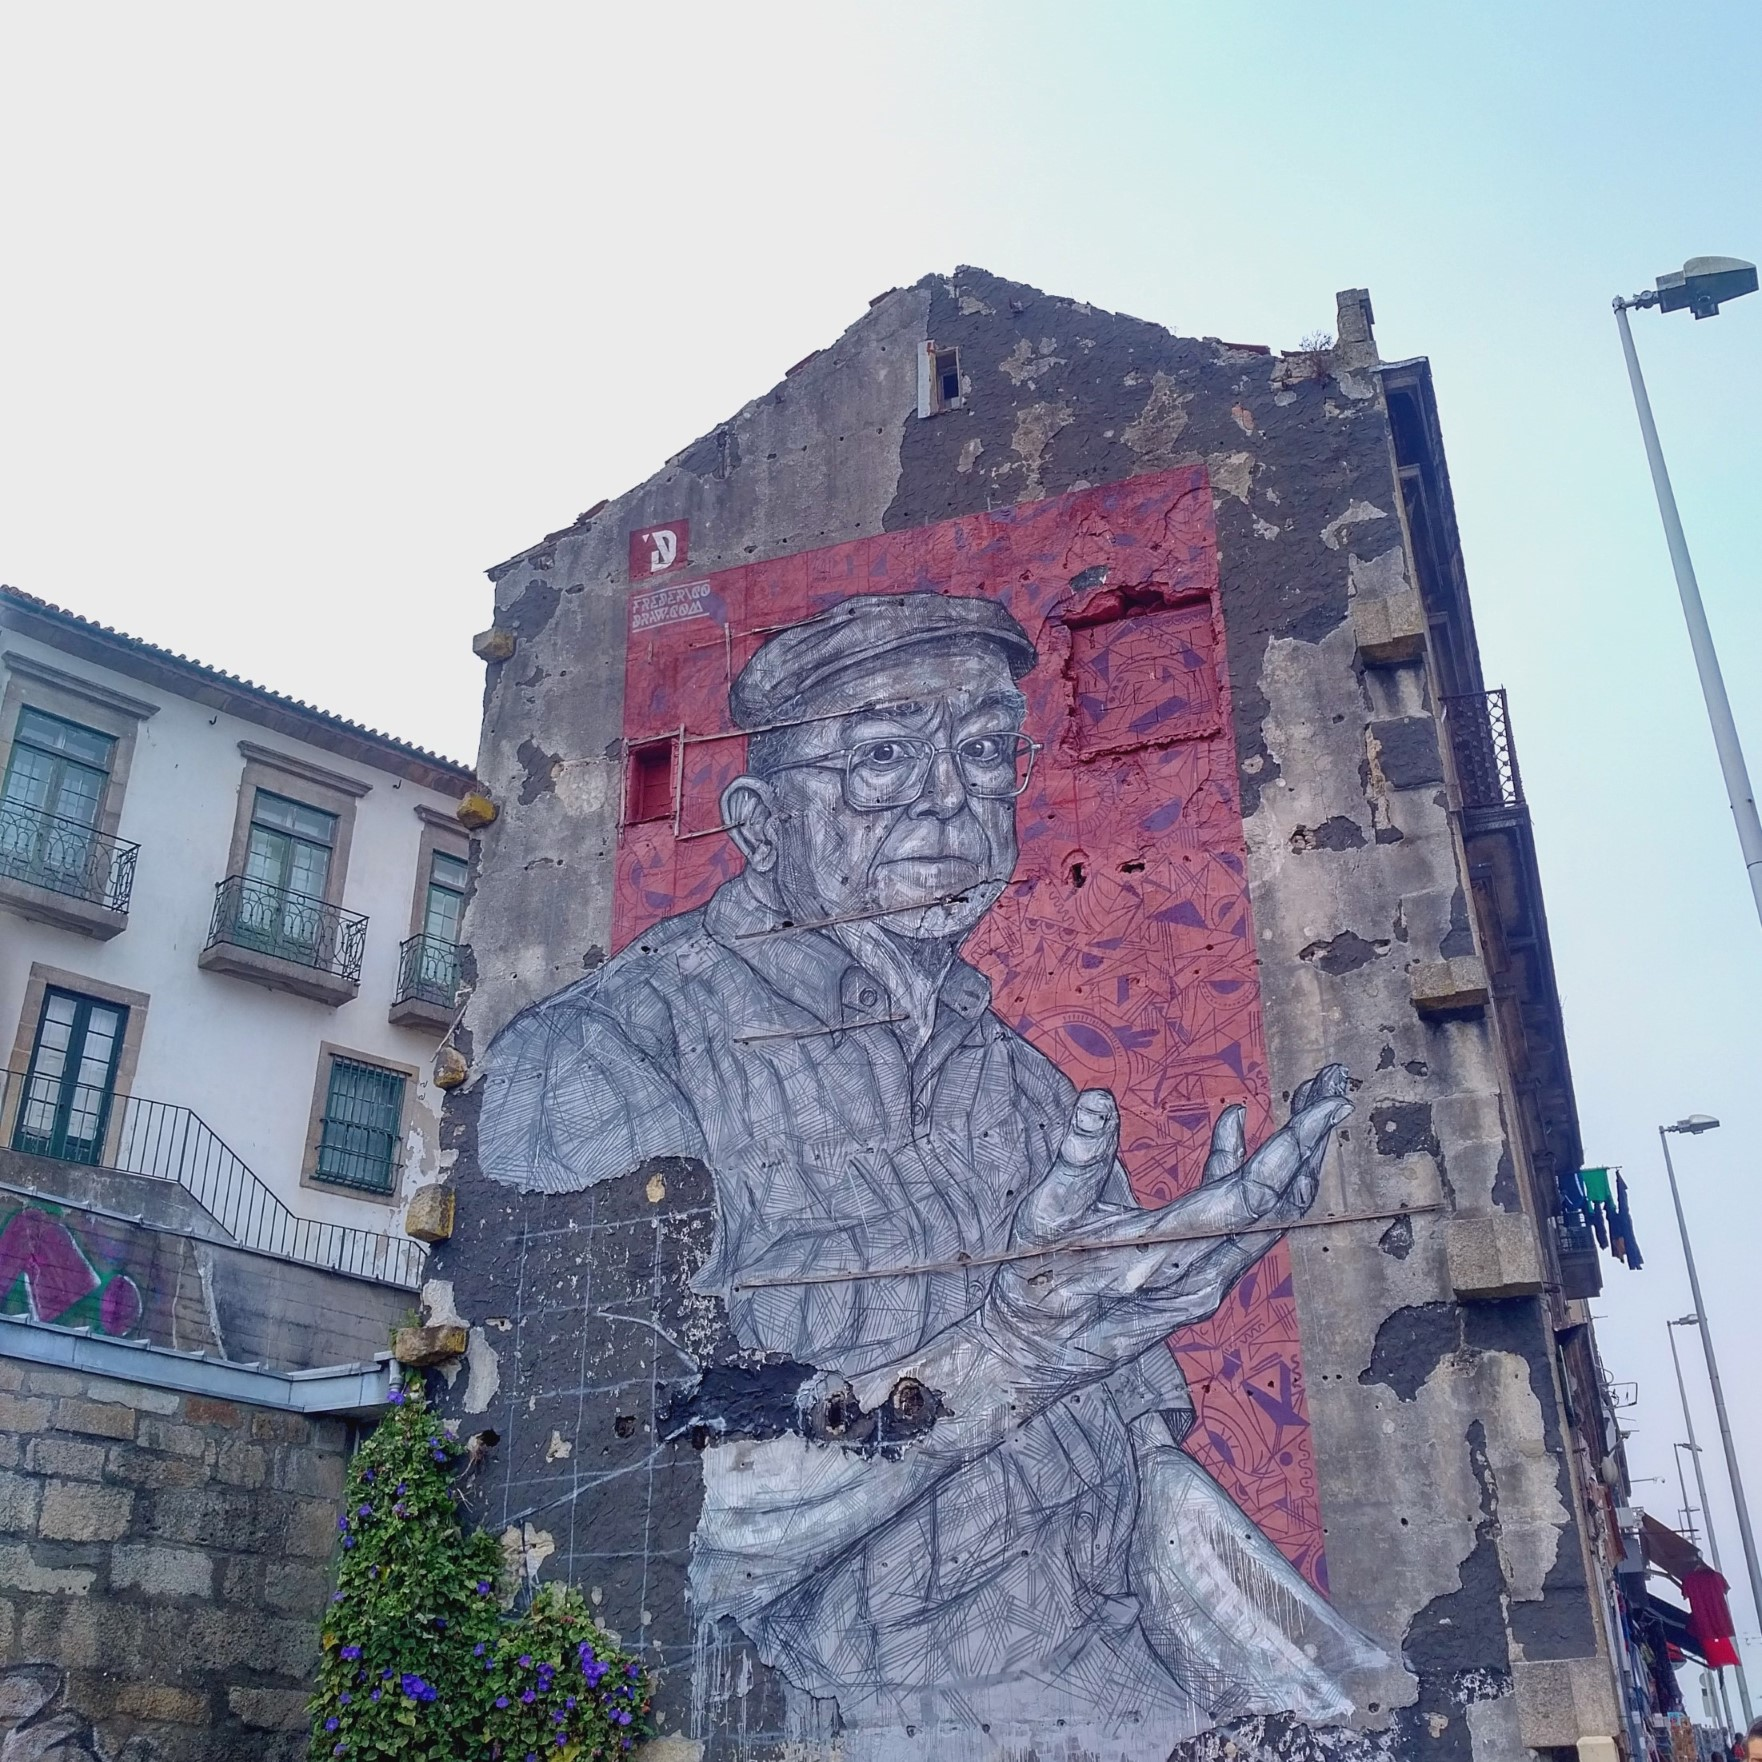 Street art in Porto by Frederico Draw